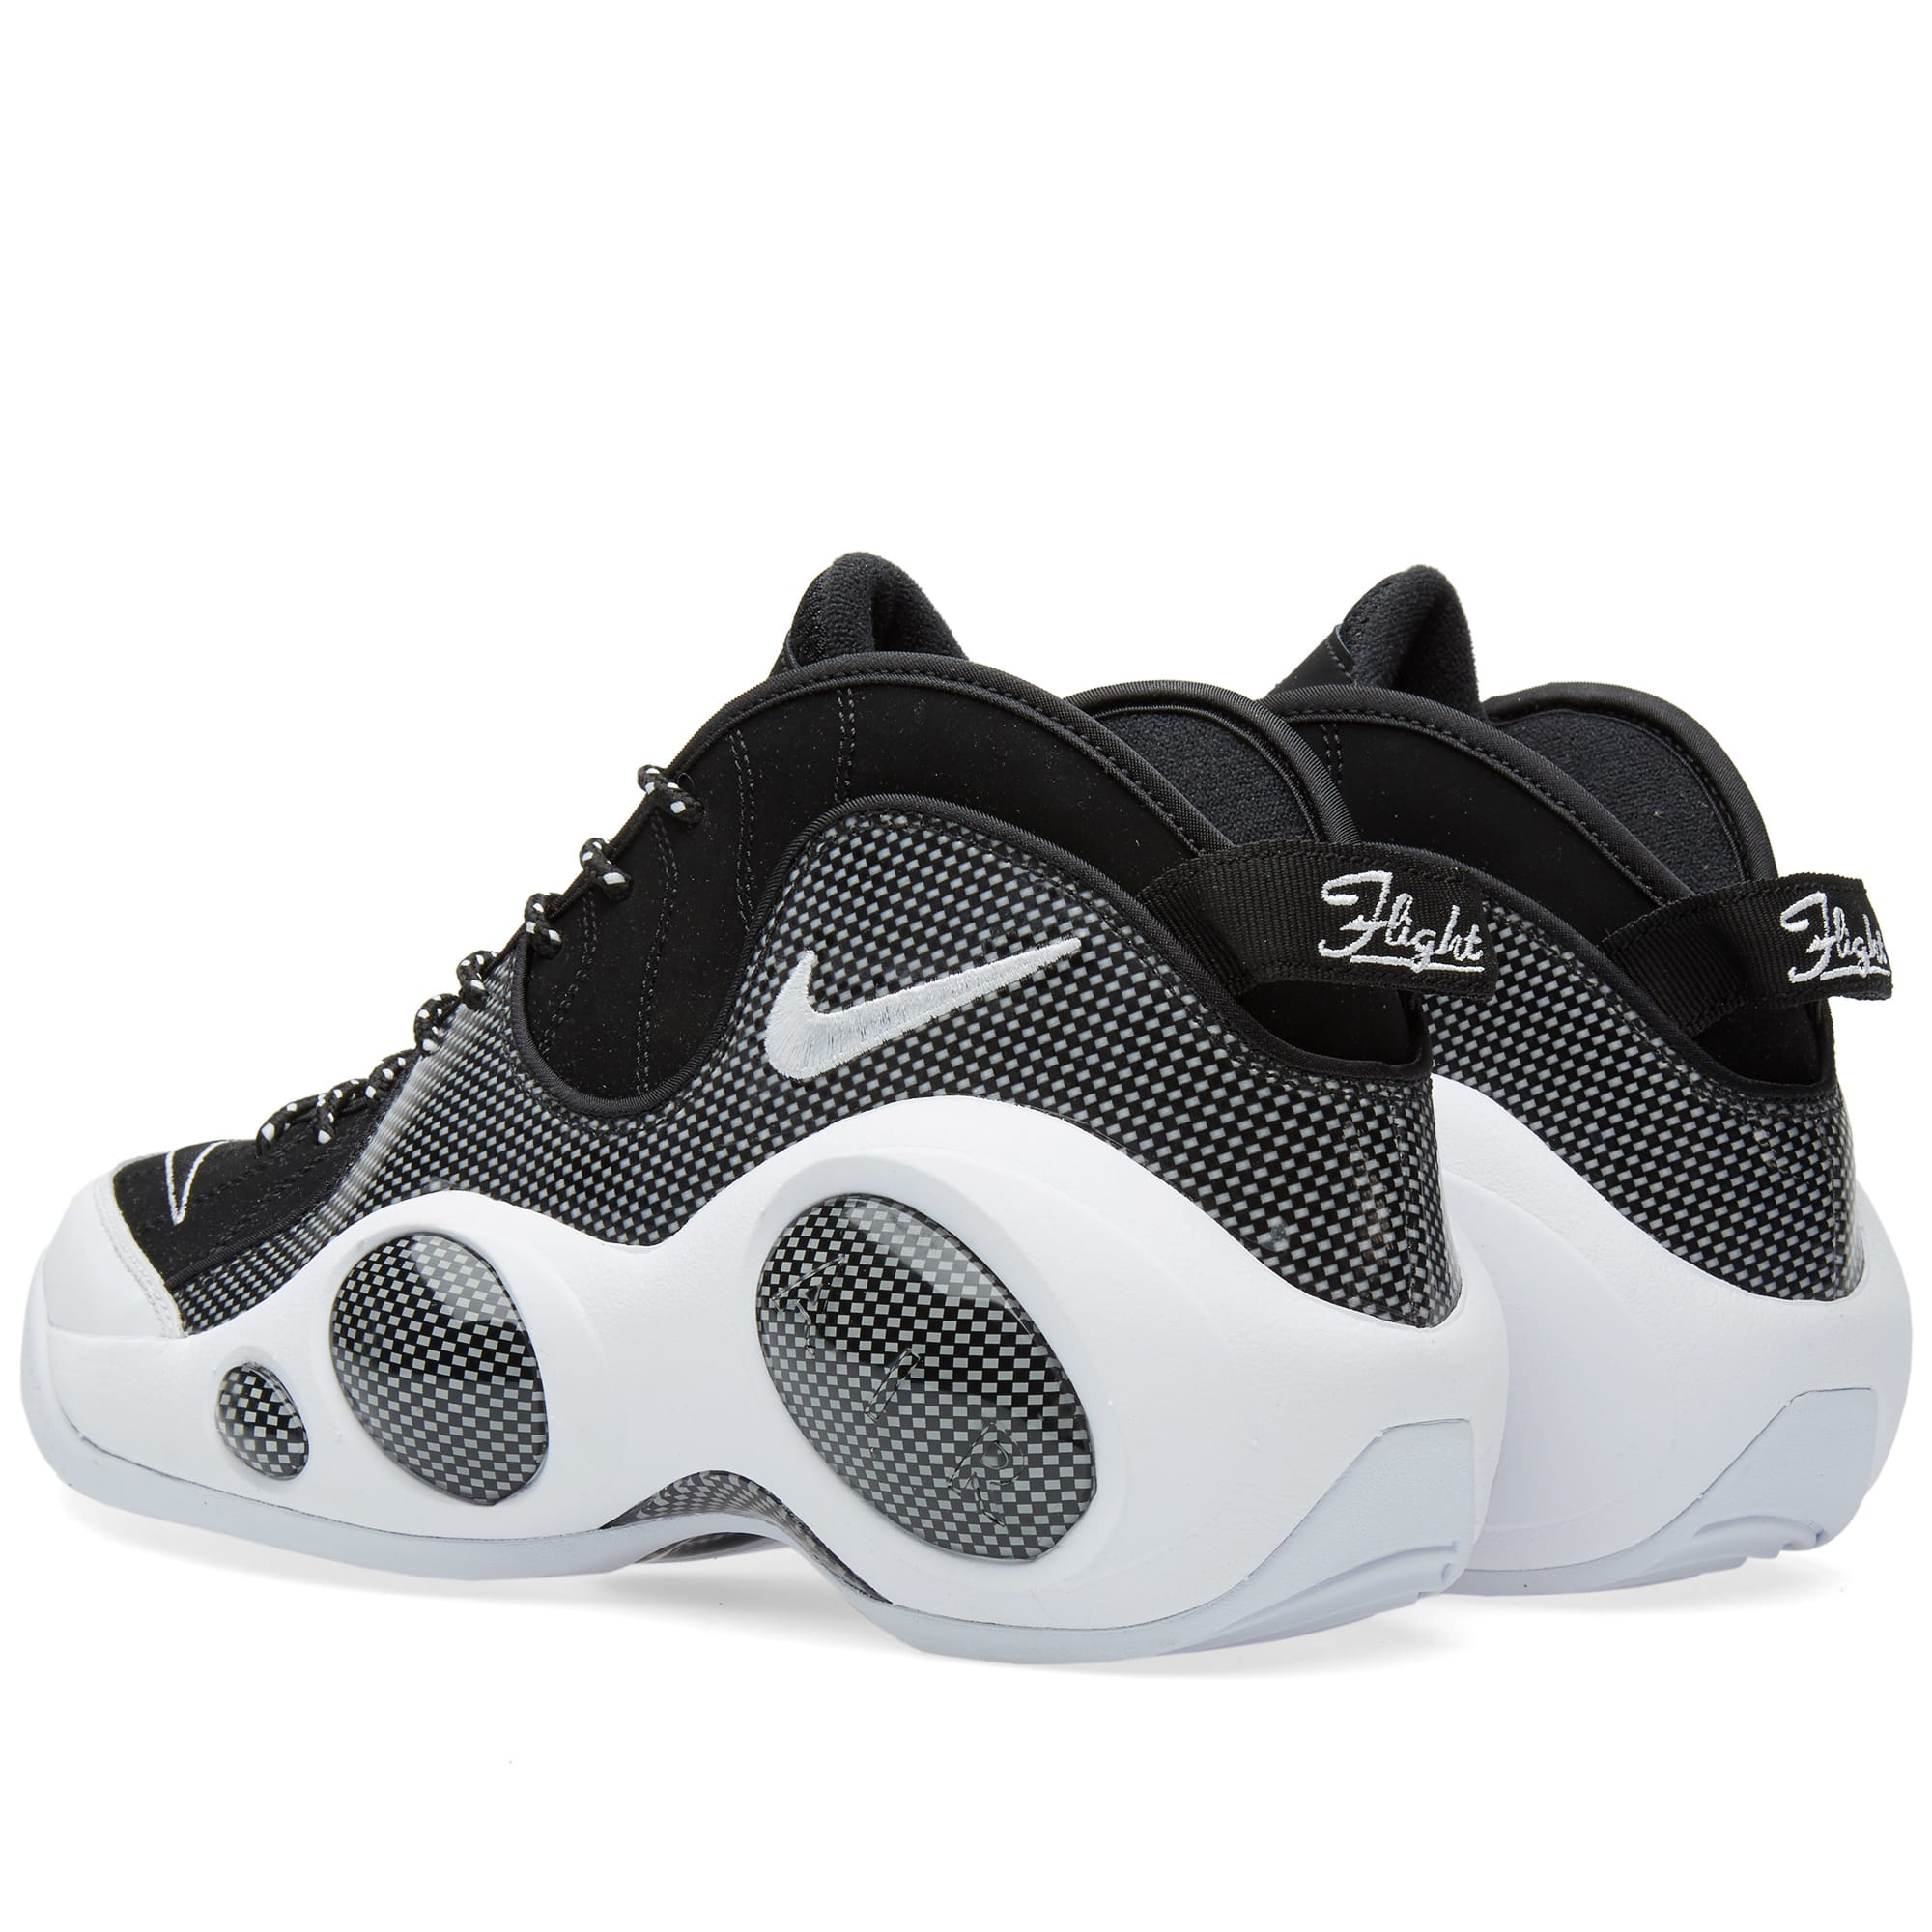 sale retailer eac6e 4a9e1 Nike Air Zoom Flight 95 SE Black, White   Metallic Silver   END.